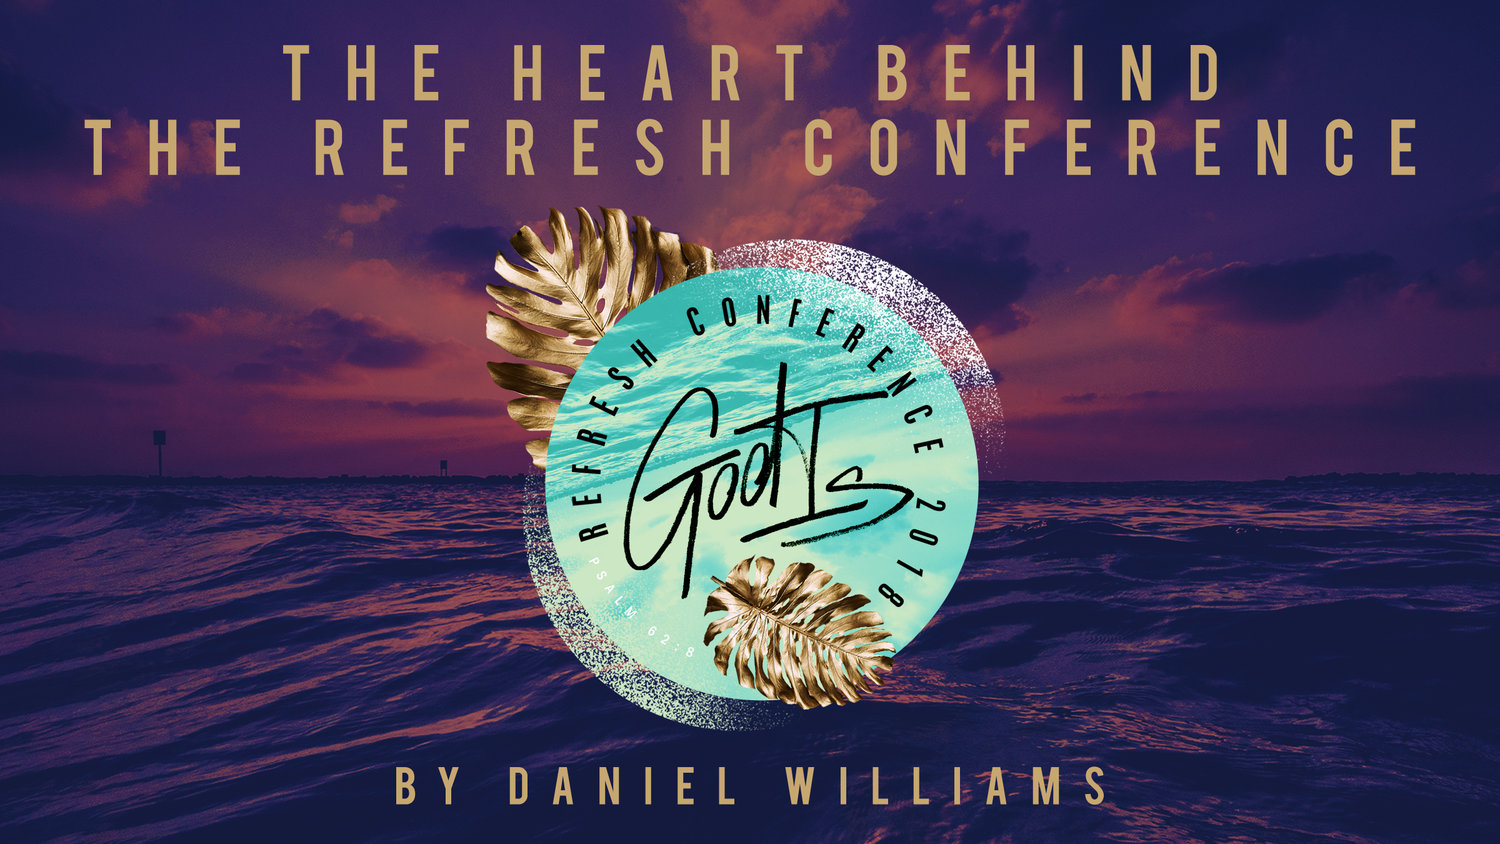 Redemption Church Delray Beach - The Heart Behind The